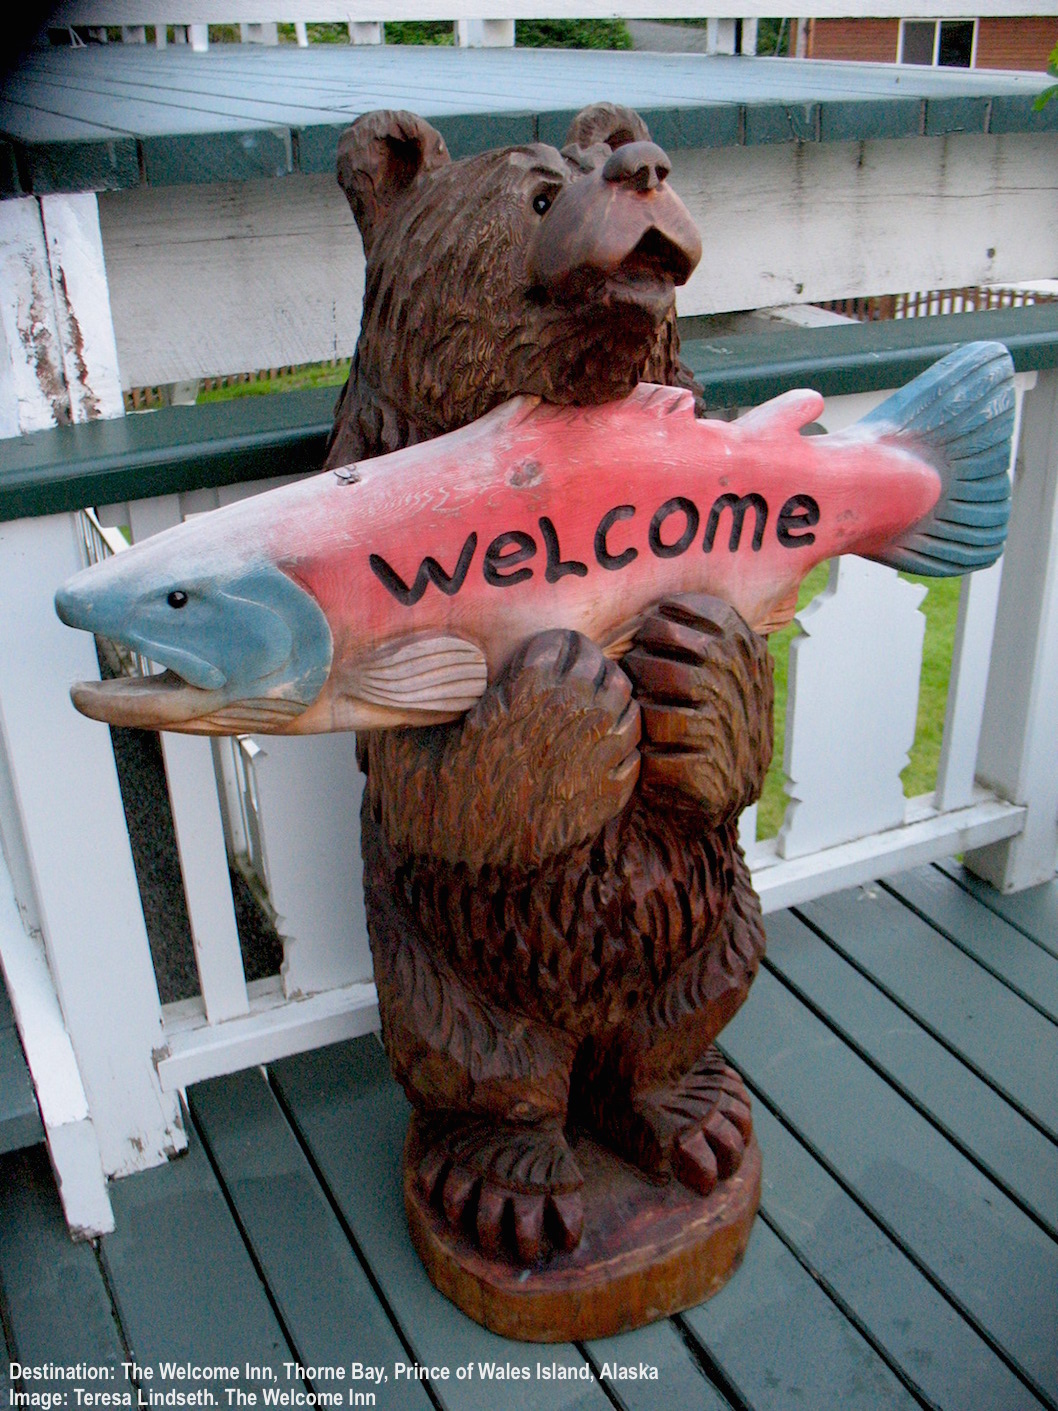 WELCOME TO THE WELCOME INN, THORNE BAY! IMAGE THANKS TO TERESA AT THE WELCOME INN.